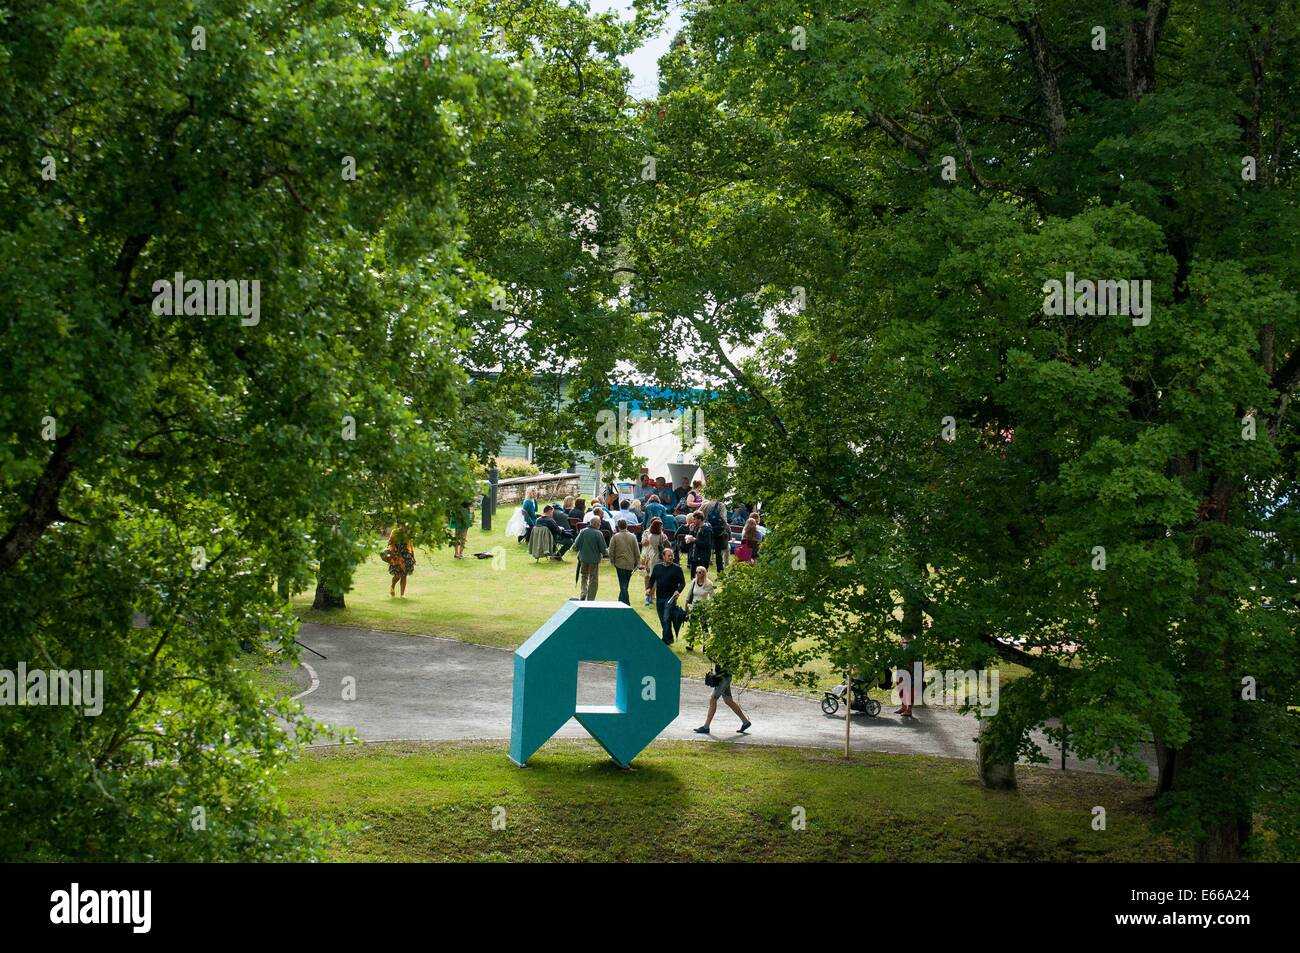 Paide, Estonia. 15th Aug, 2014. A statue of the Festival of Opinion Culture is seen in Paide, Estonia, on Aug. 15, - Stock Image